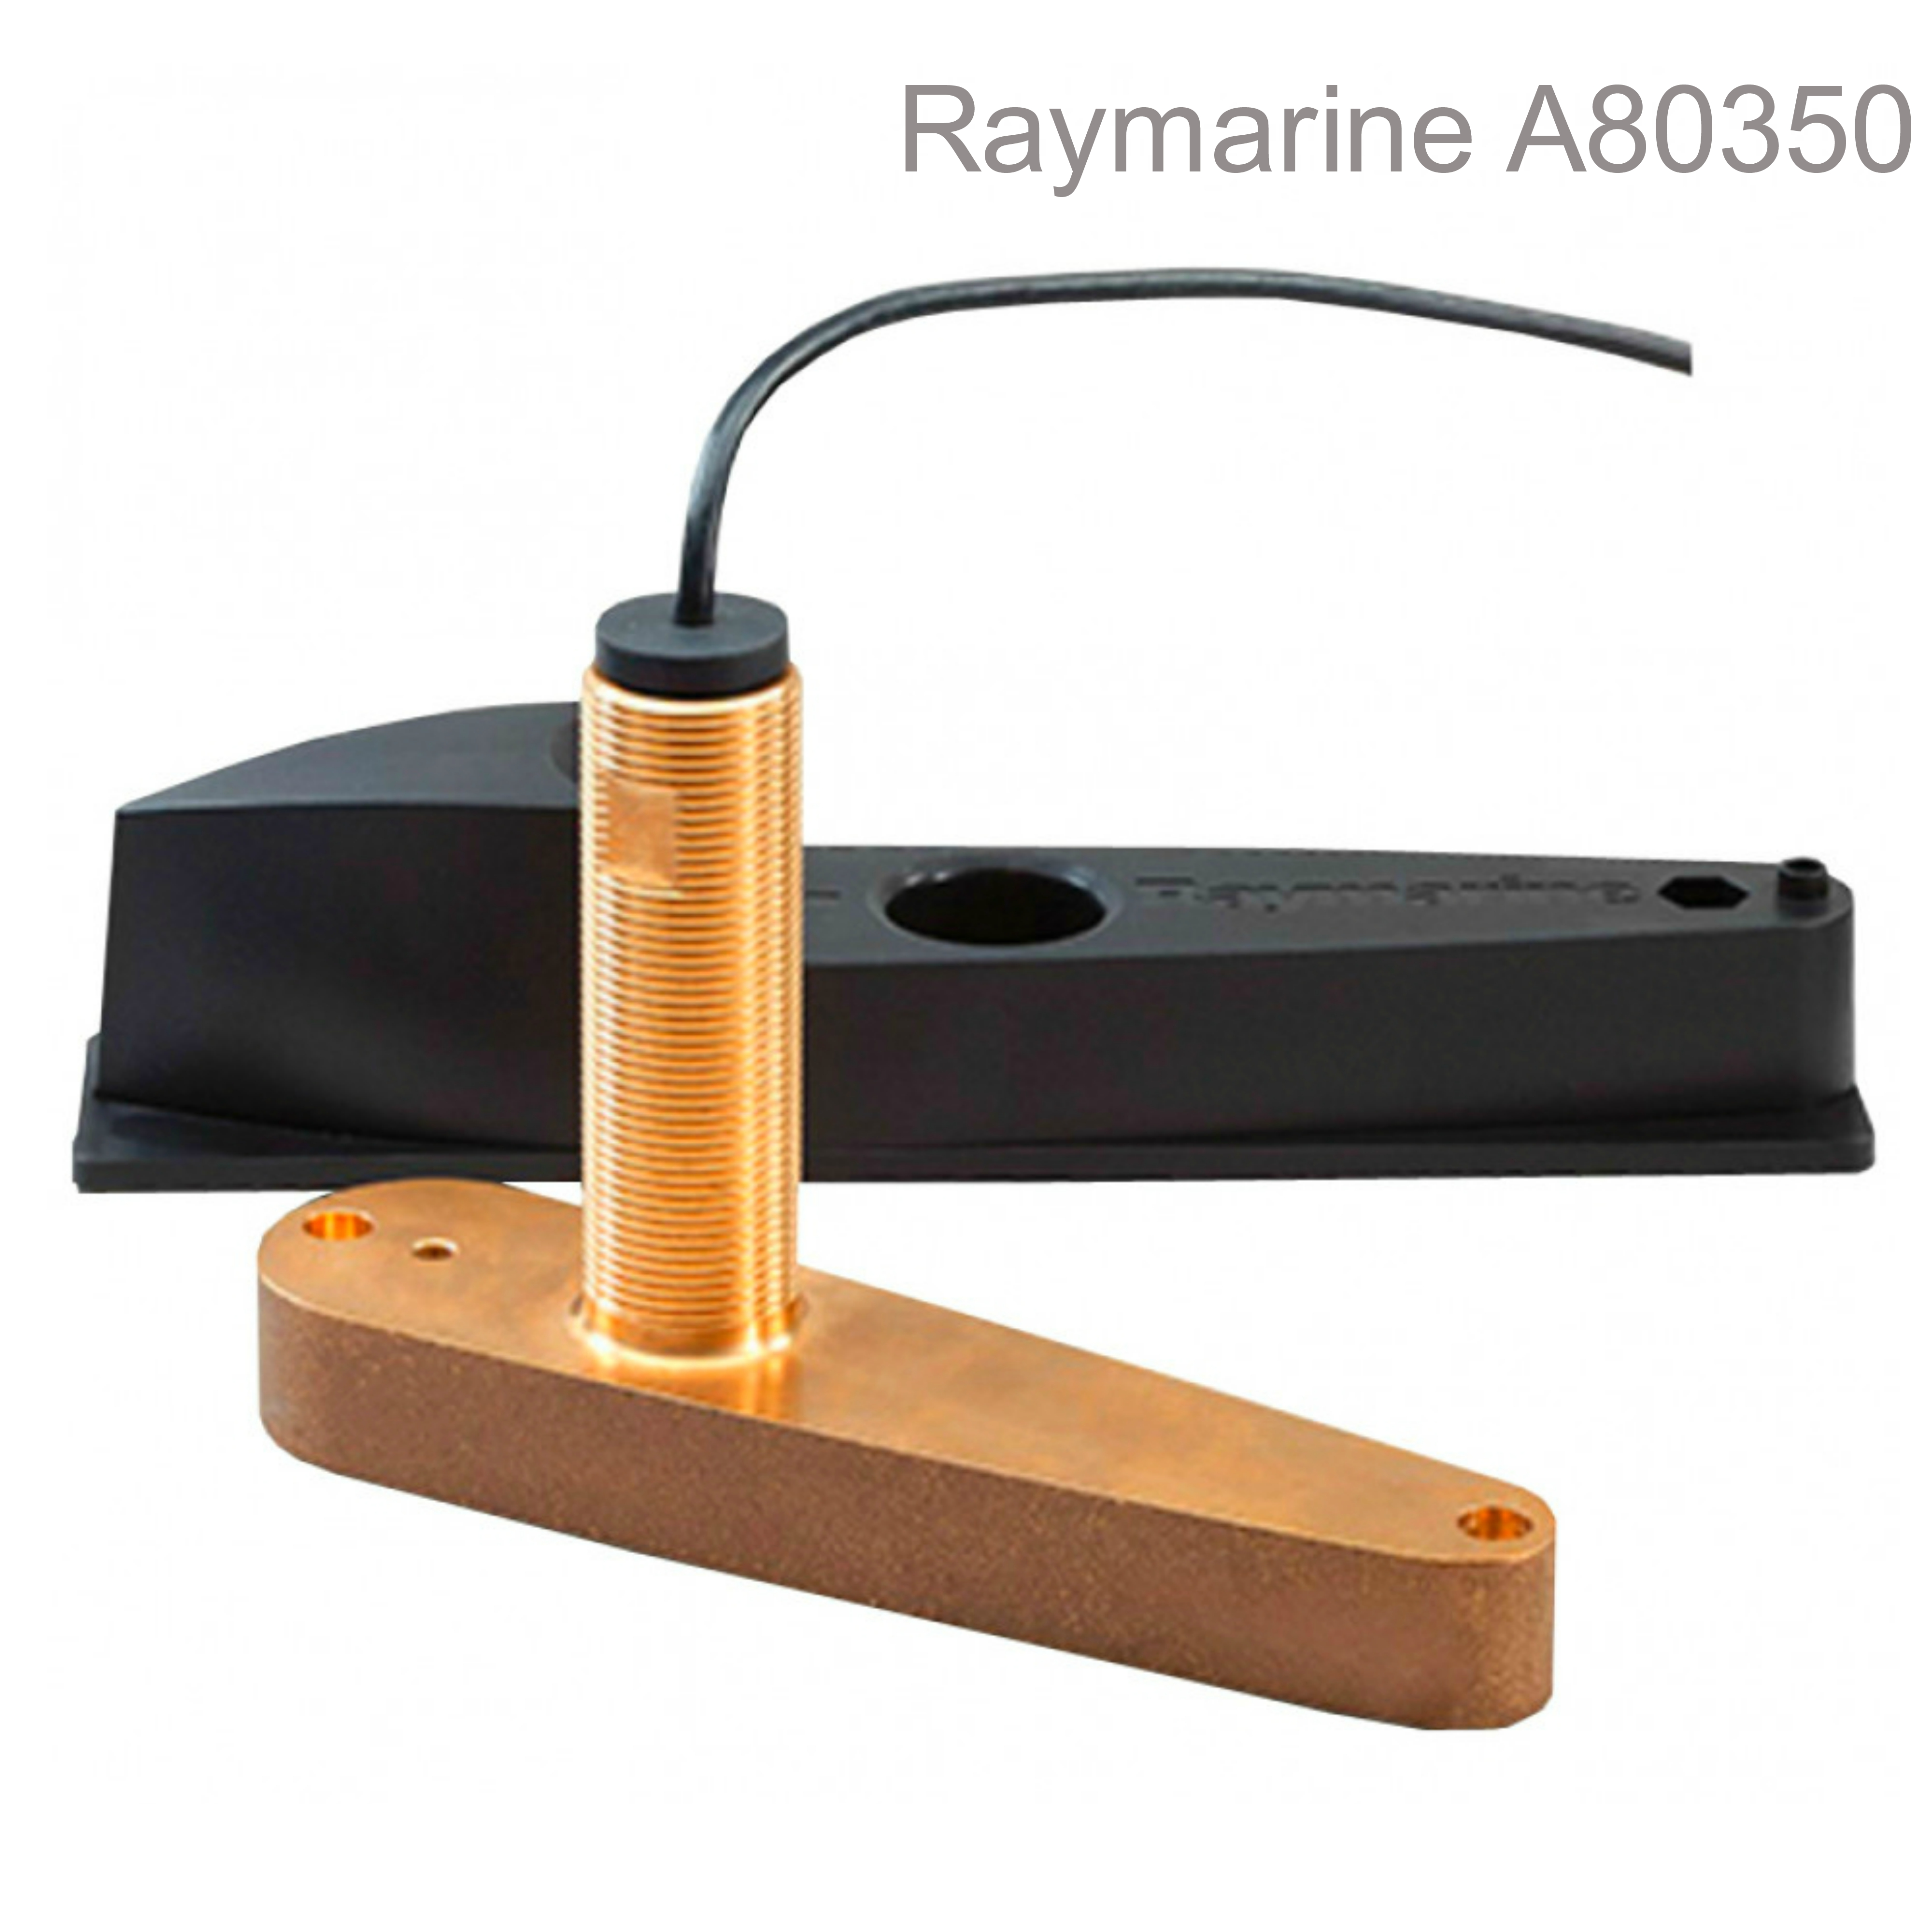 Raymarine-A80350|CPT-120 Bronze Thru-Hull Chirp Transducer|10m Cable|Depth &Temp